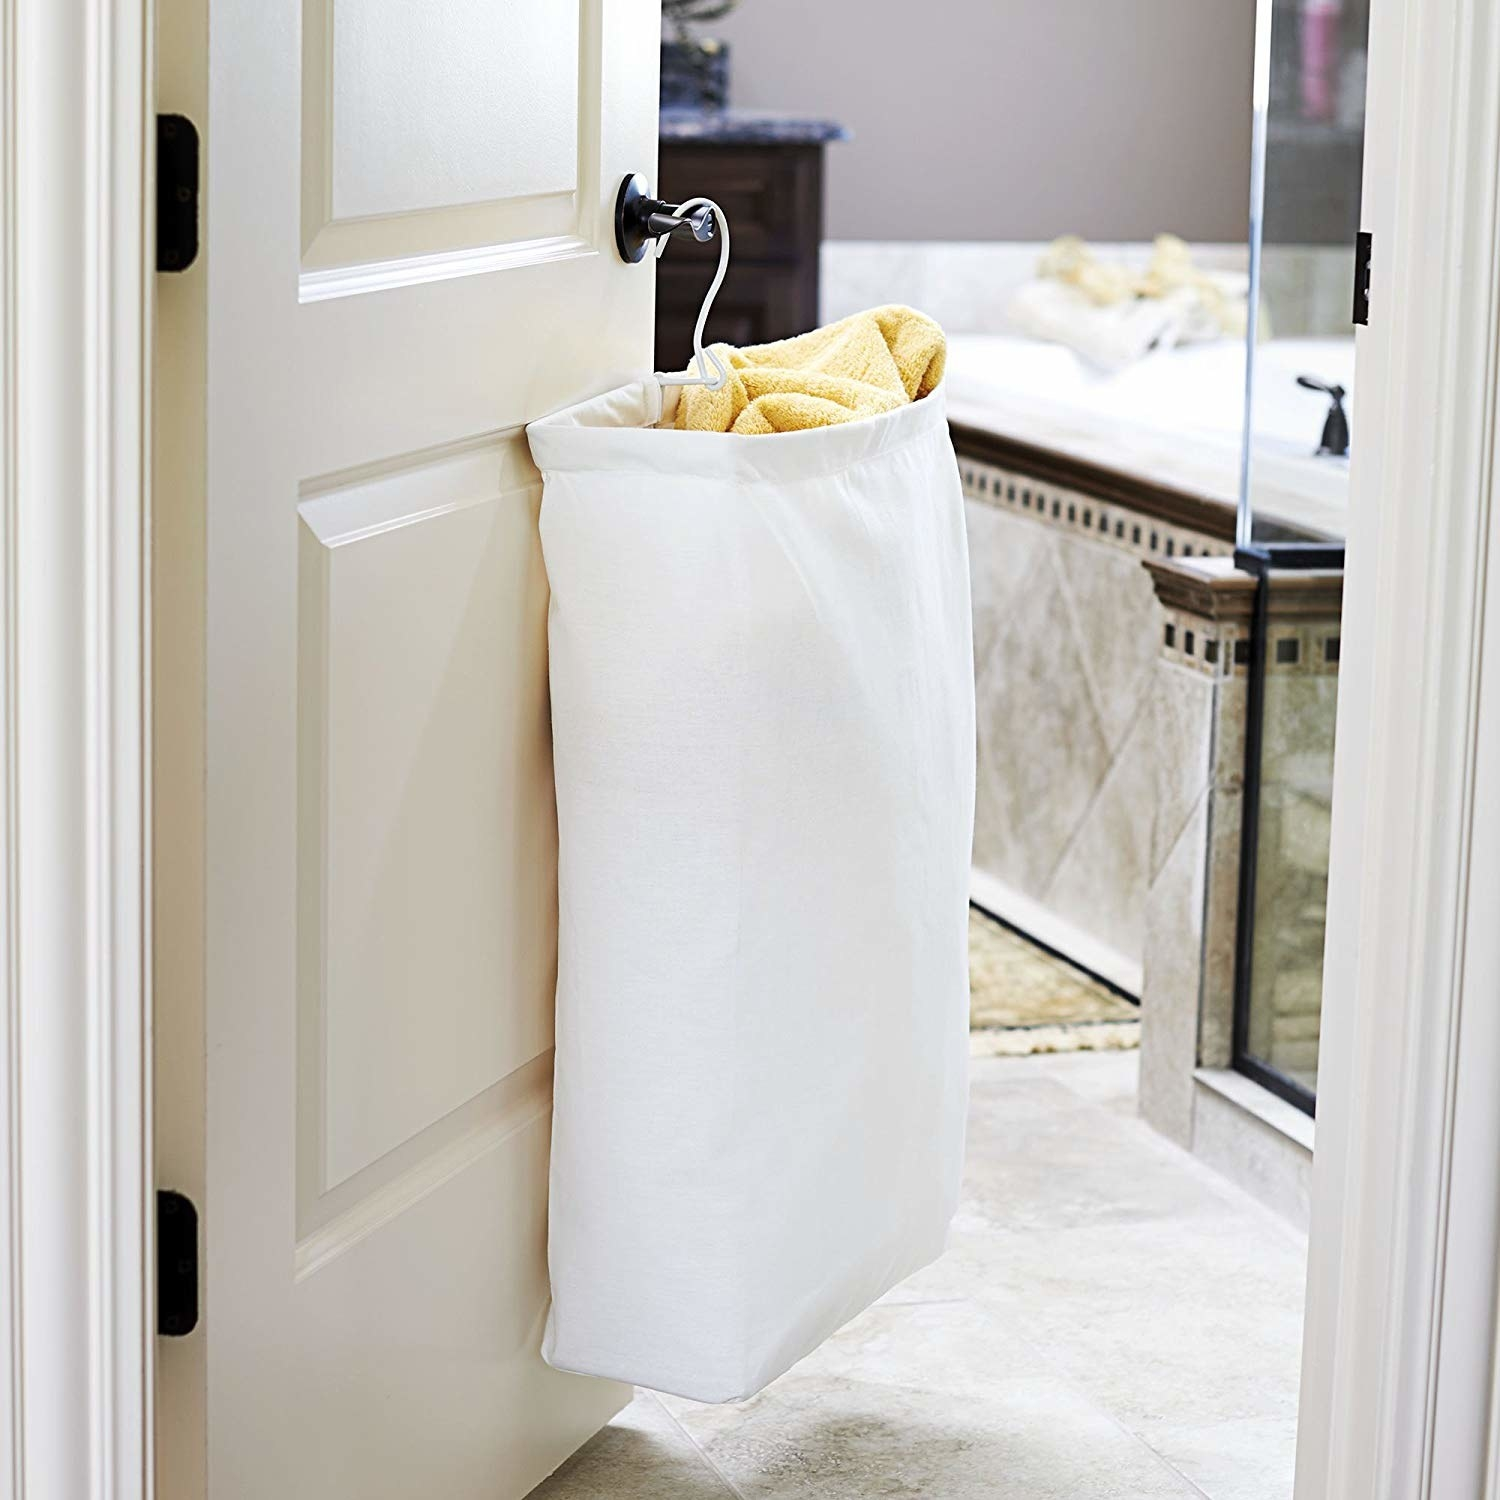 Cotton canvas laundry bag hanging on door